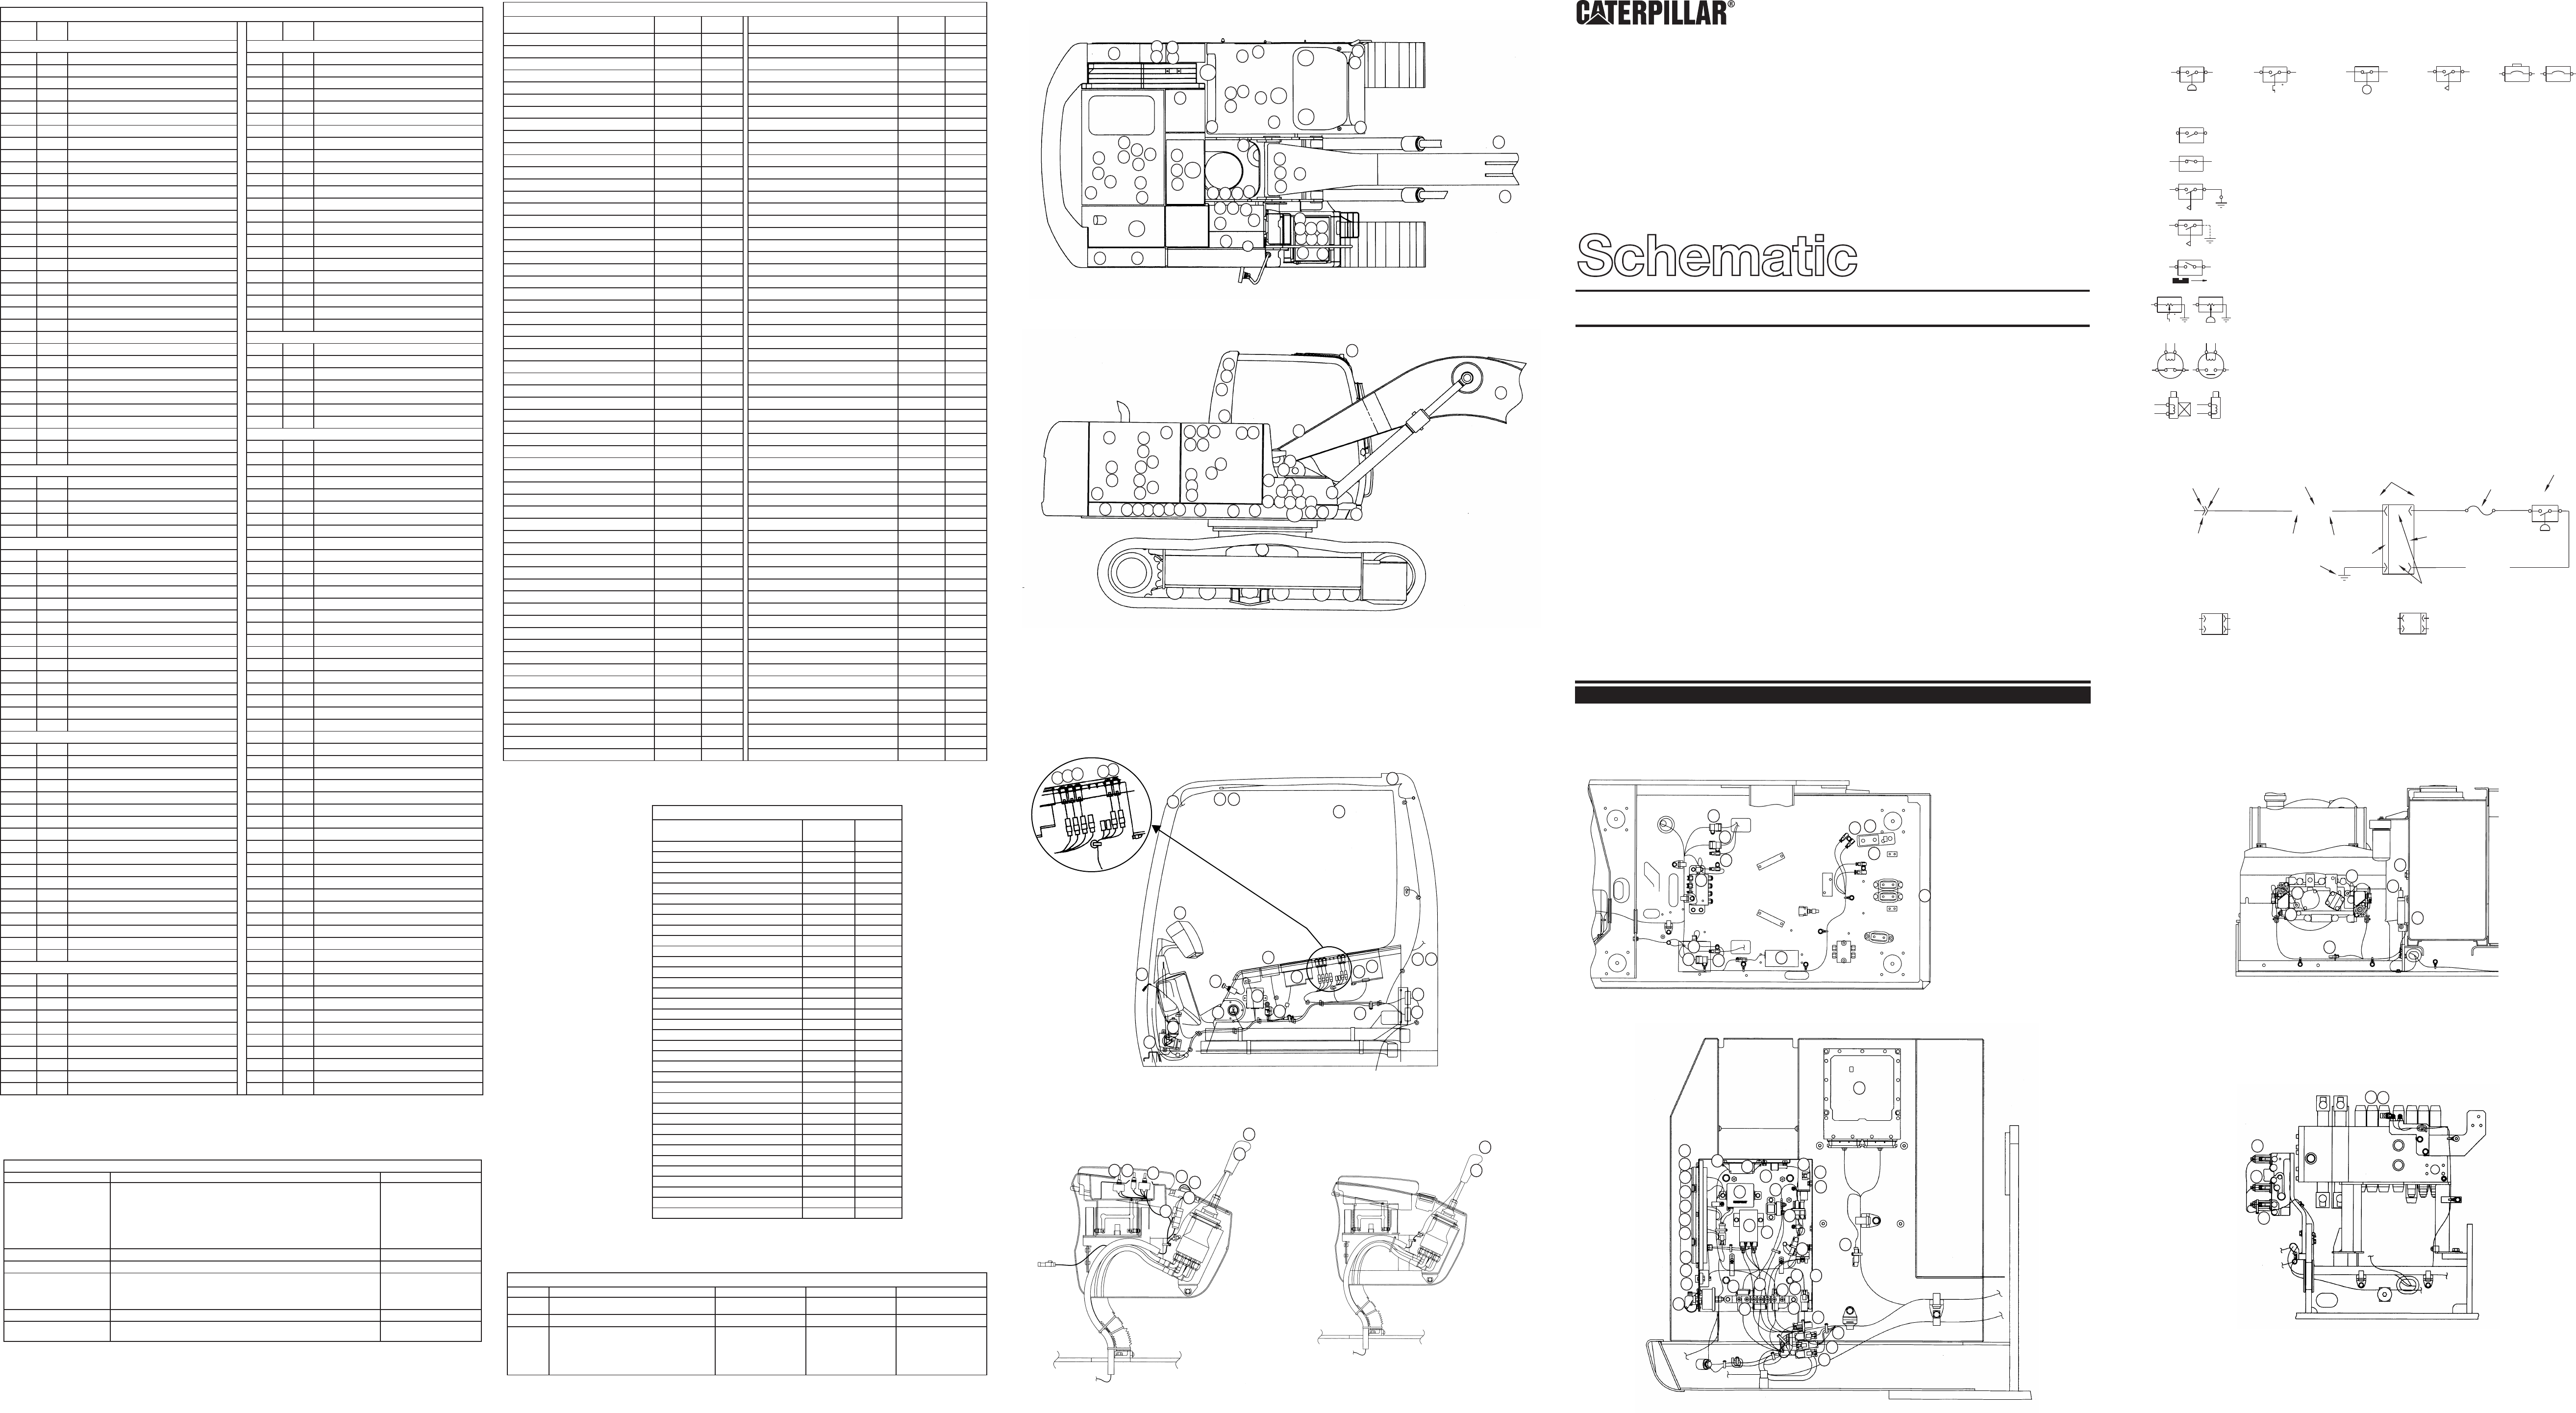 315c Excavator Electrical Schematic Vol 1 Main Vol 2 Tool Control Used In Service Manual Renr5520 Cat Machines Electrical Schematic